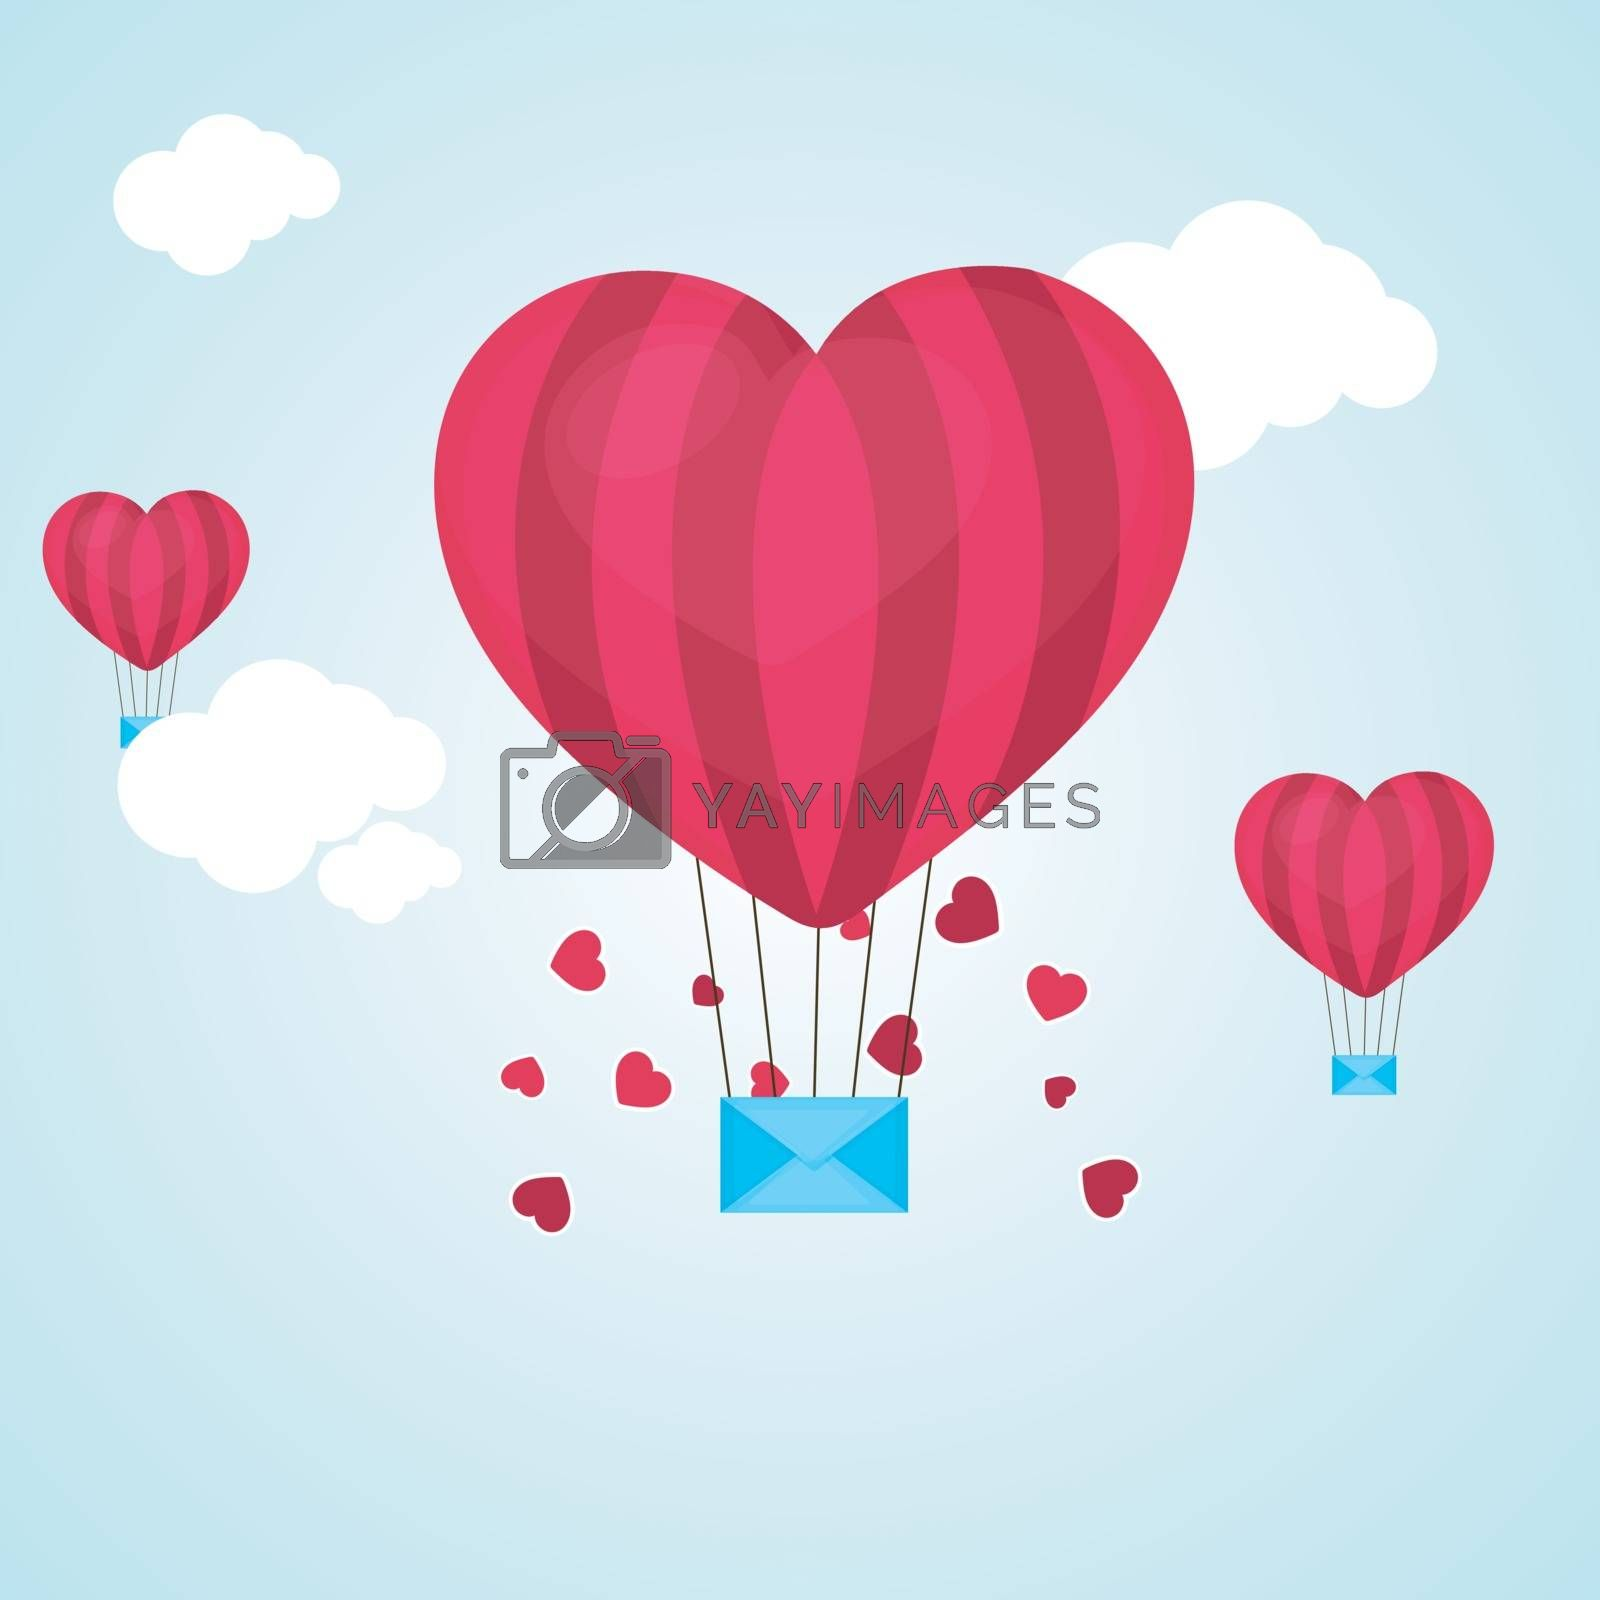 Creative Heart shaped Hot Air Balloon with Envelope flying in the sky for Happy Valentine's Day celebration.